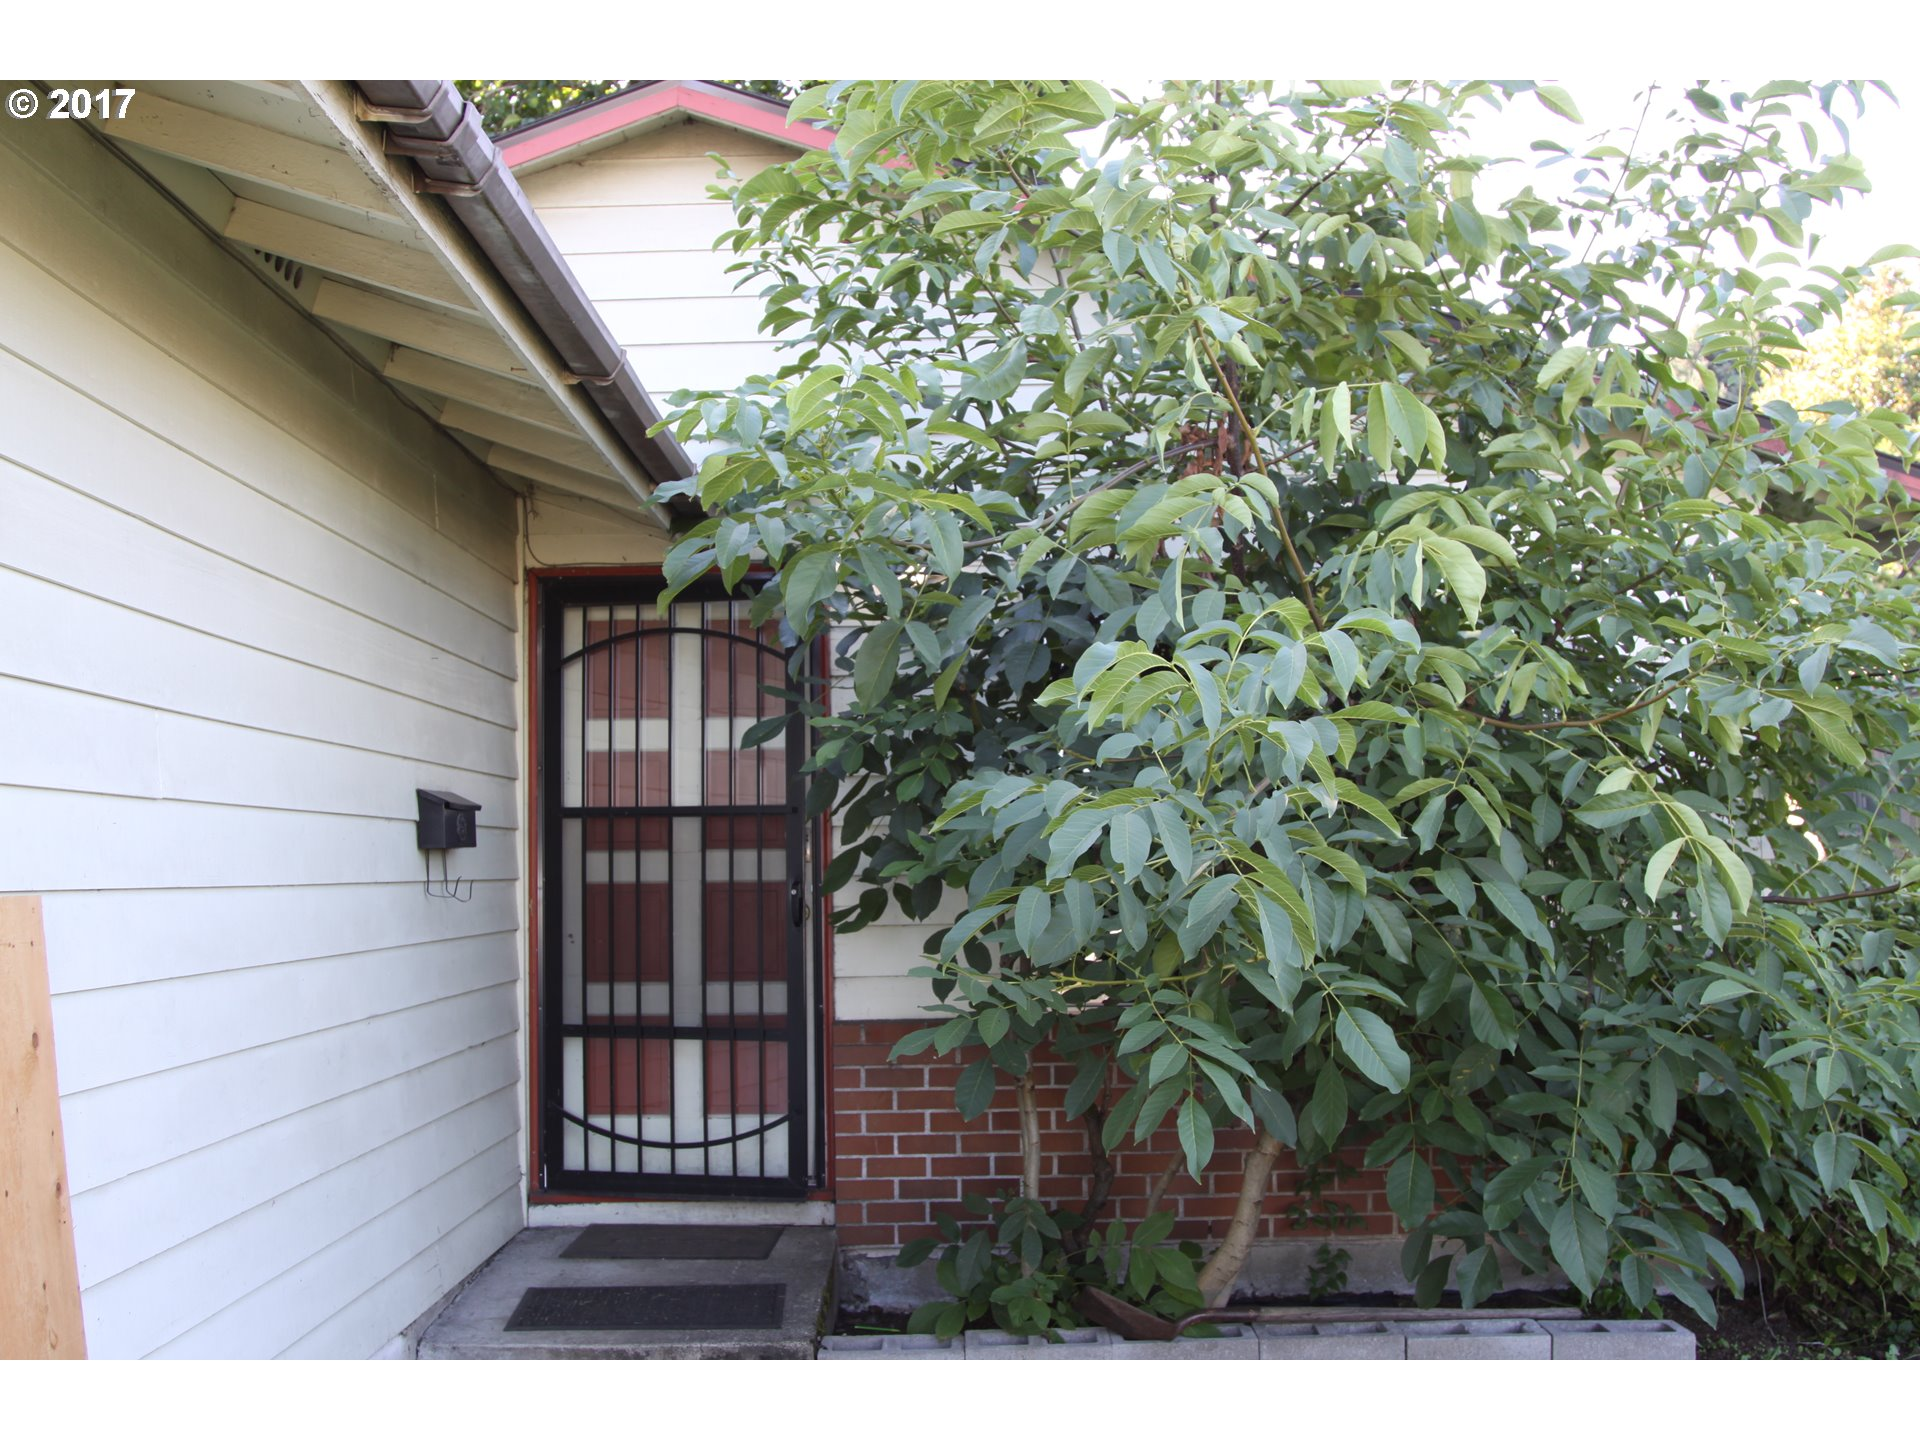 960 sq. ft 3 bedrooms 1 bathrooms  House For Sale, Portland, OR